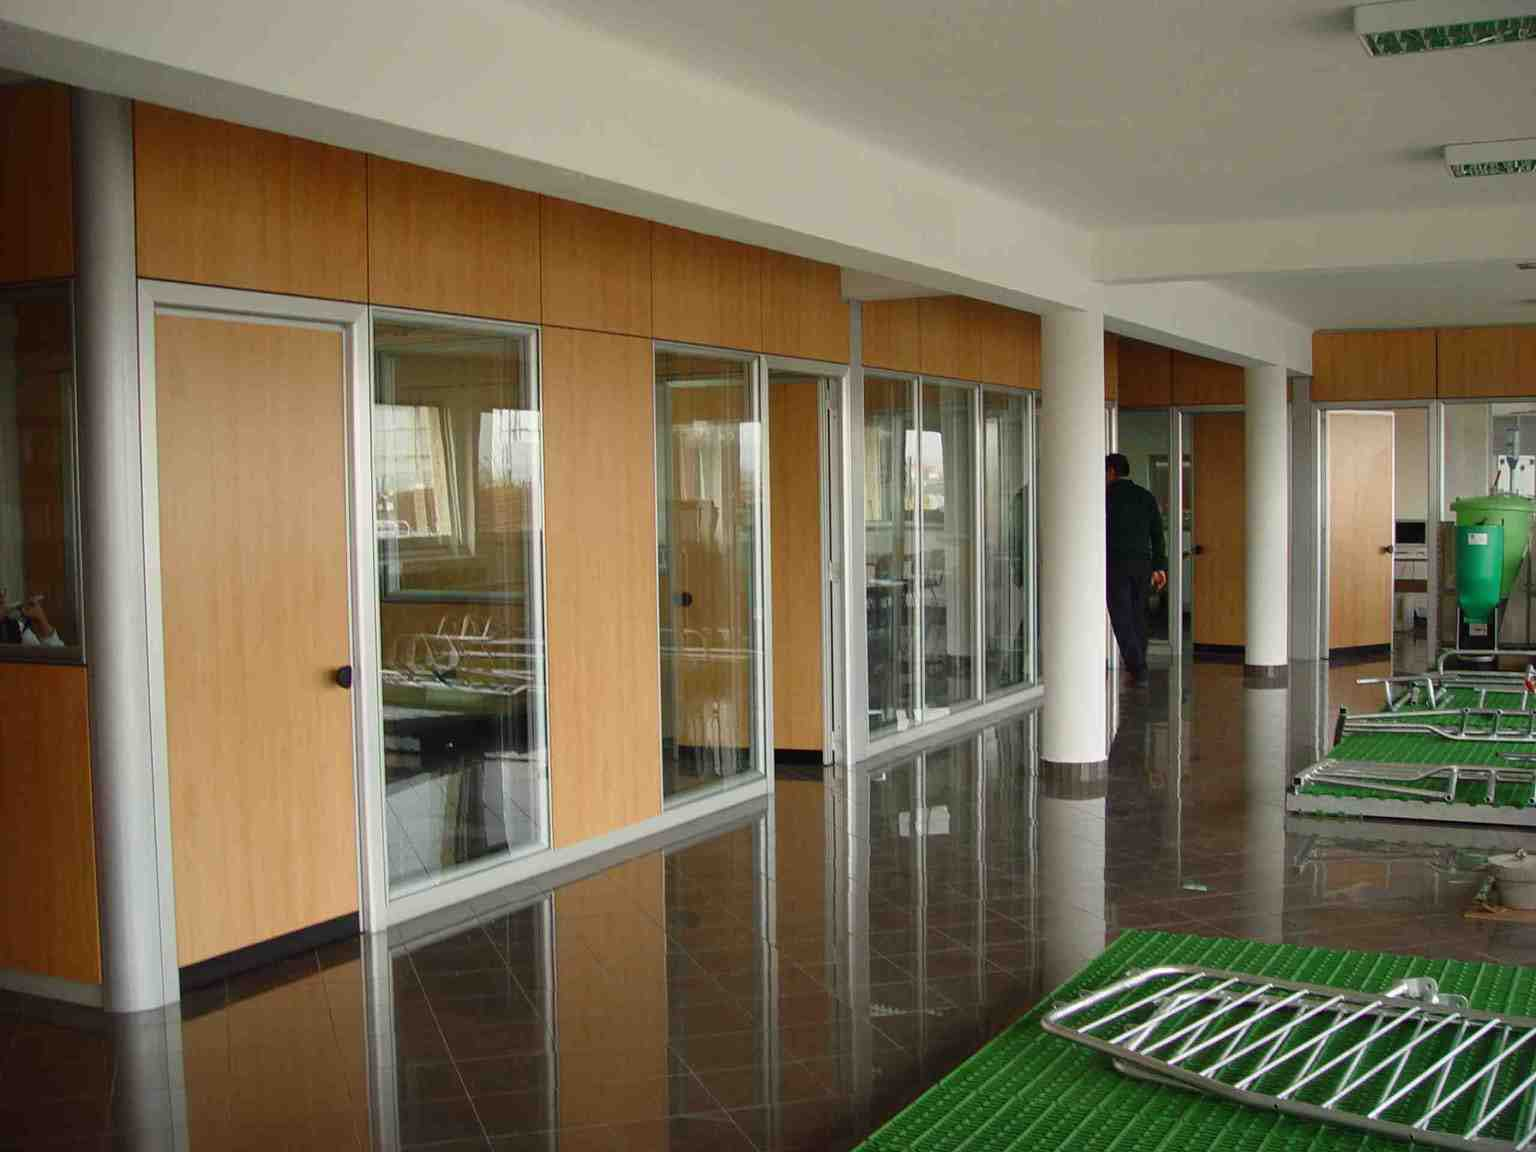 Glazed office partitioning office furniture Office partition walls with doors